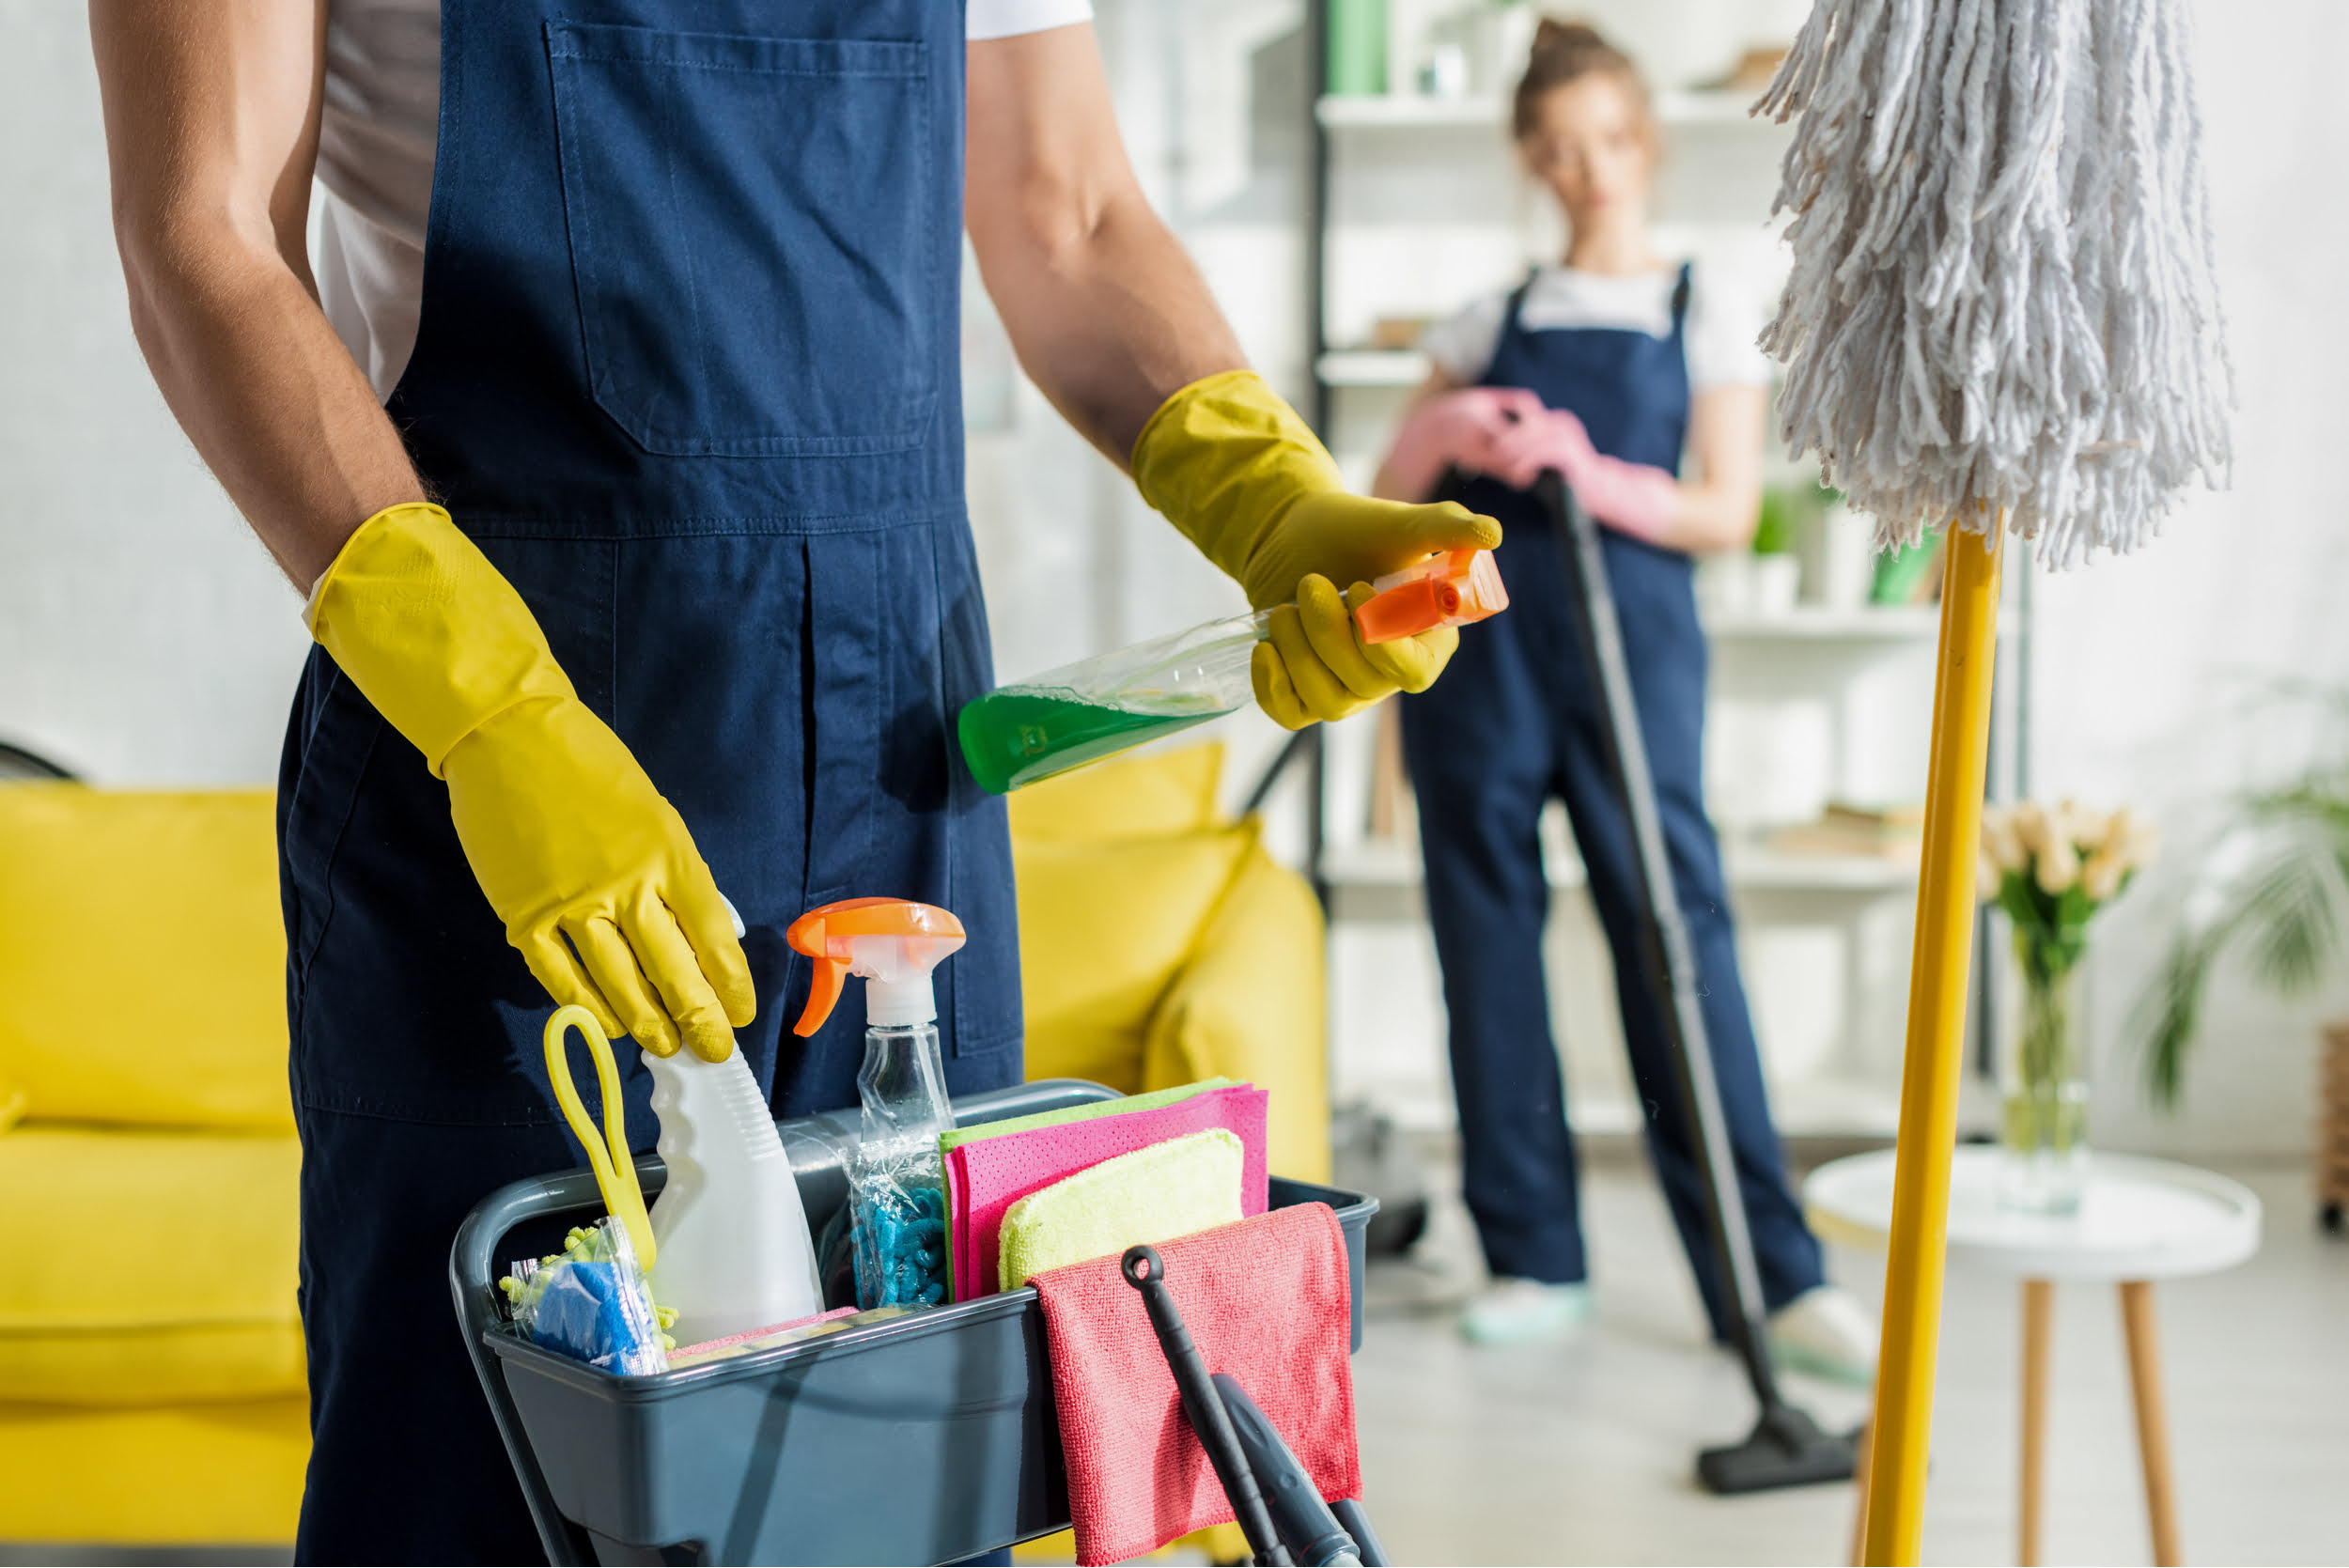 Two people in overalls and cleaning supplies. Star Clean Ltd, Cleaning, Cleaners, Commercial Cleaners, Domestic Cleaners. Bath, Bristol